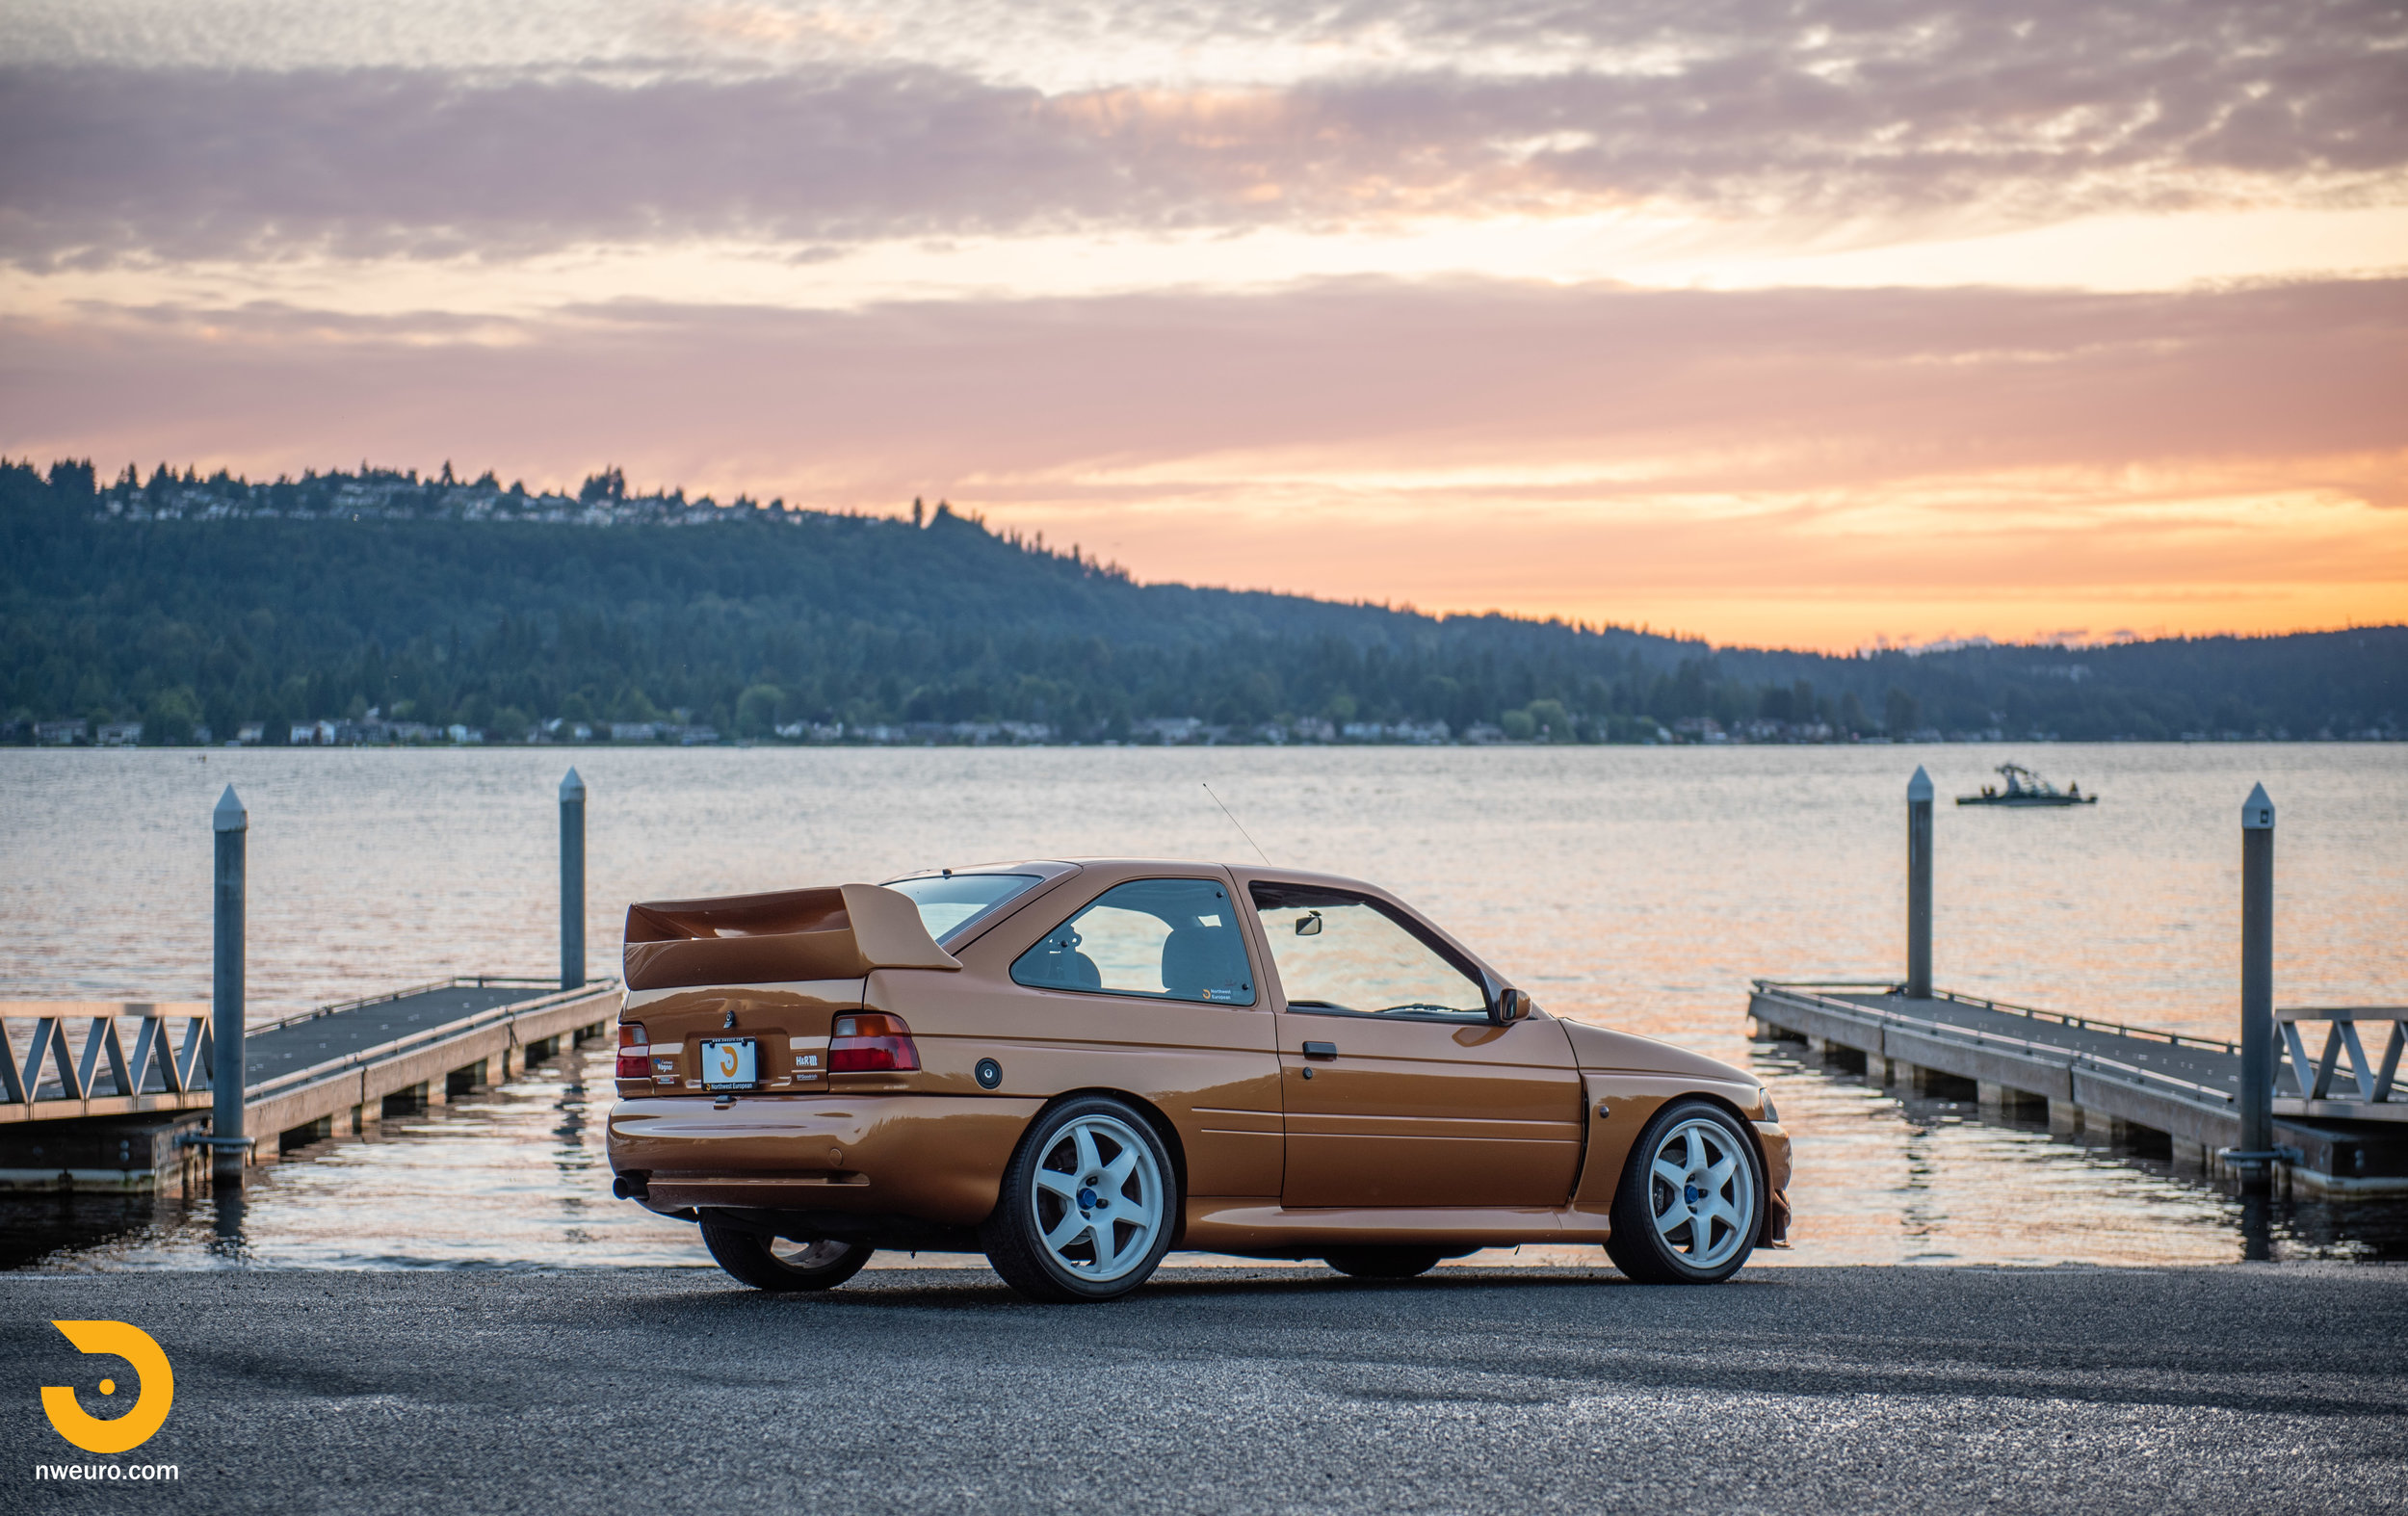 1995 Ford Escort Cosworth RS Gold-58.jpg